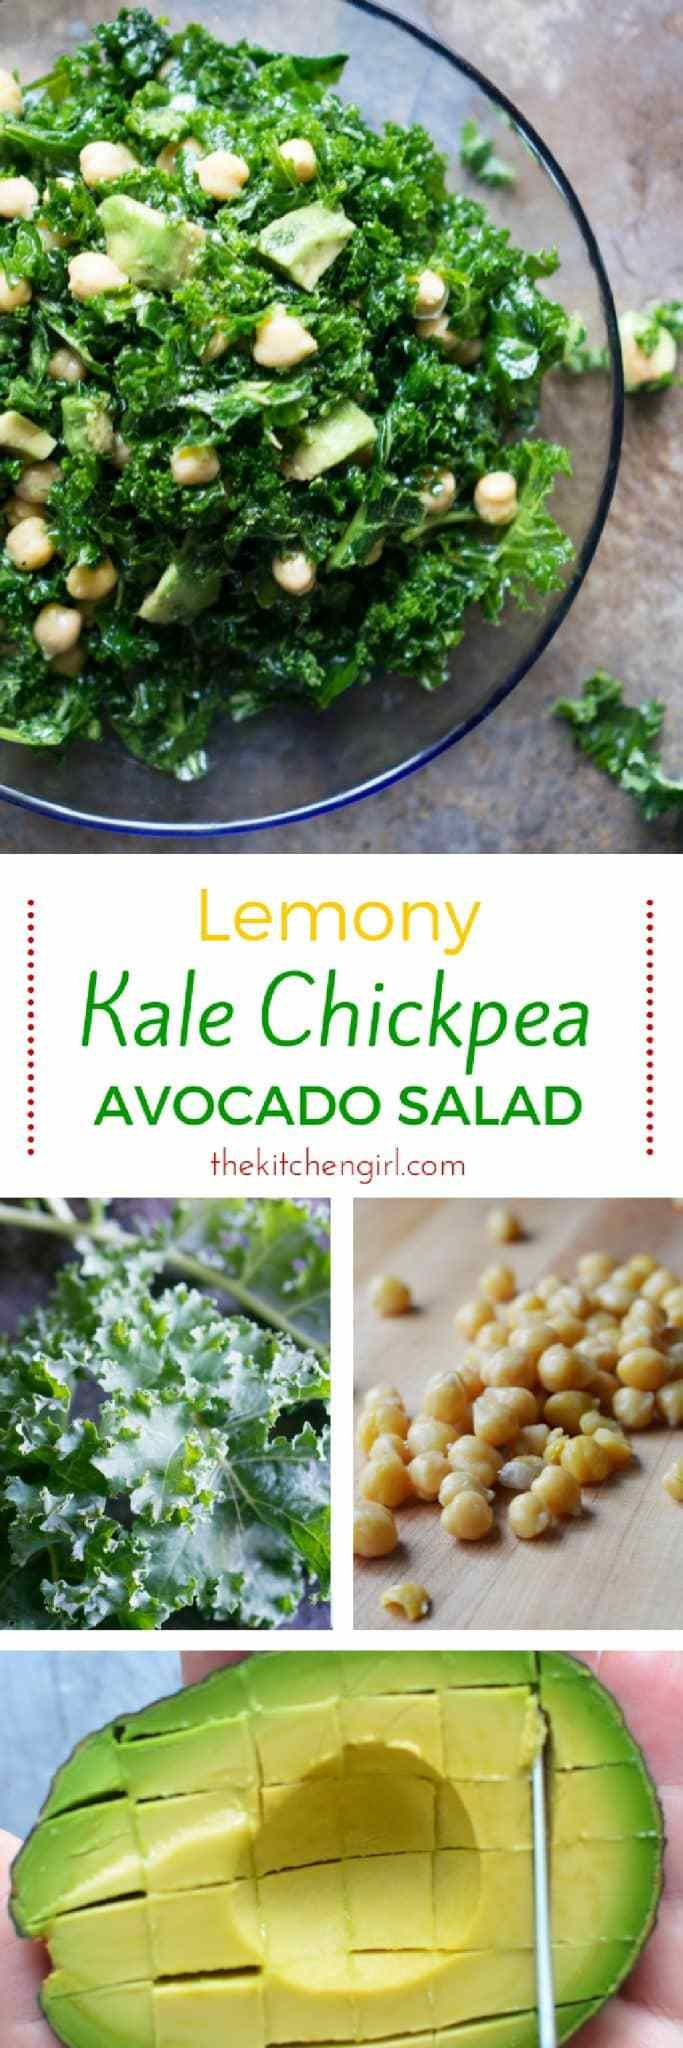 I'm crushing nutrition goals with this crazy delish salad! Healthy, simple, vegan, AND gluten free lunch idea! Lemony Kale Chickpea Avocado Salad recipe video on thekitchengirl.com #kalerecipes #avocadorecipes #saladrecipes #healthysalad #lunchideas